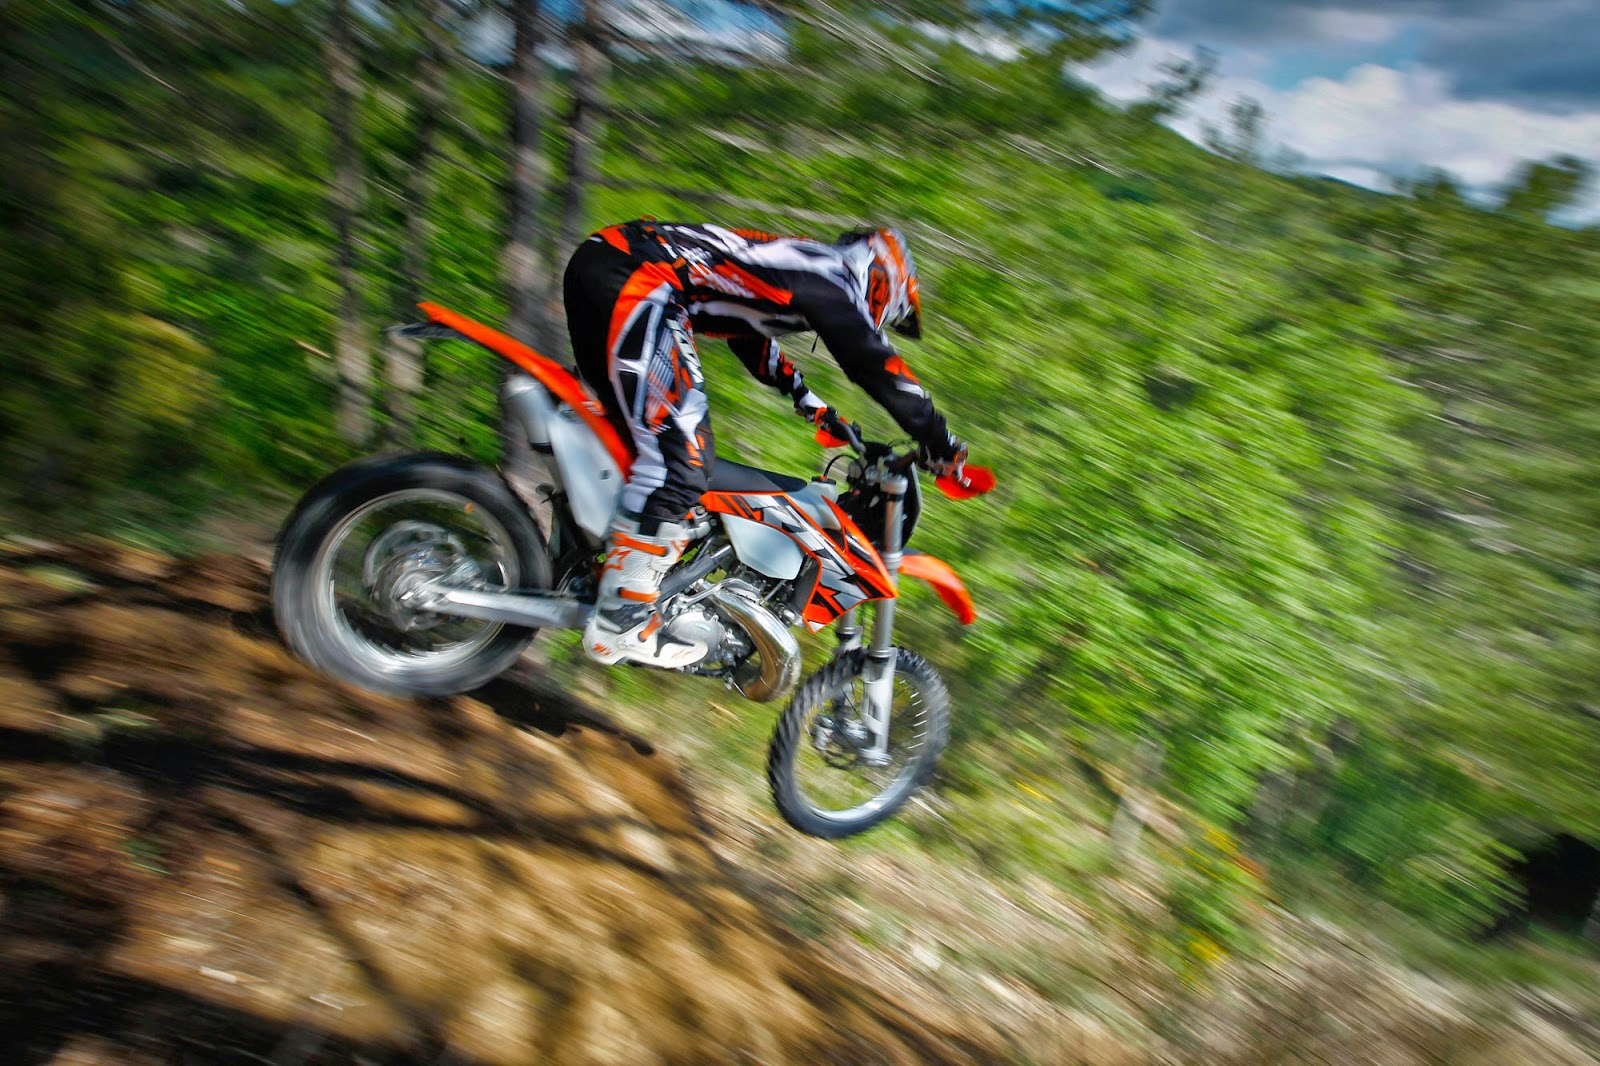 KTM 200 EXC new Bikes HD Images